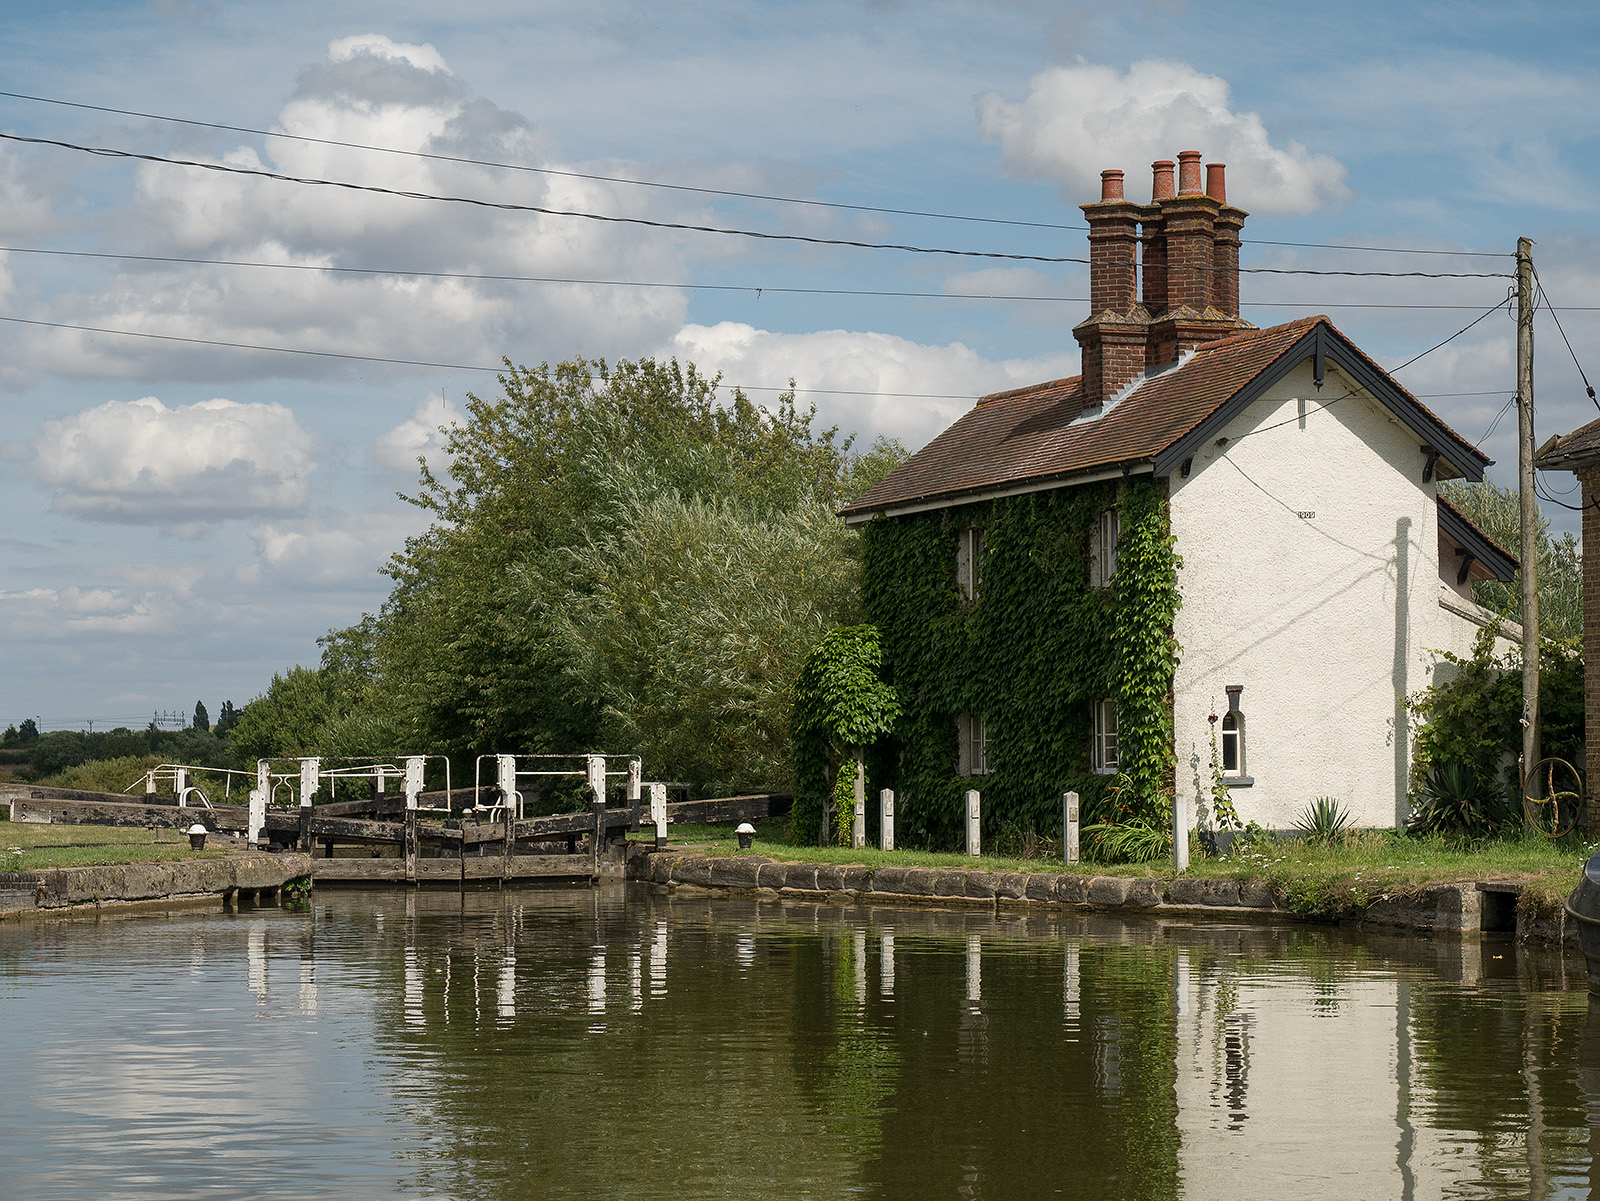 Marsworth locks